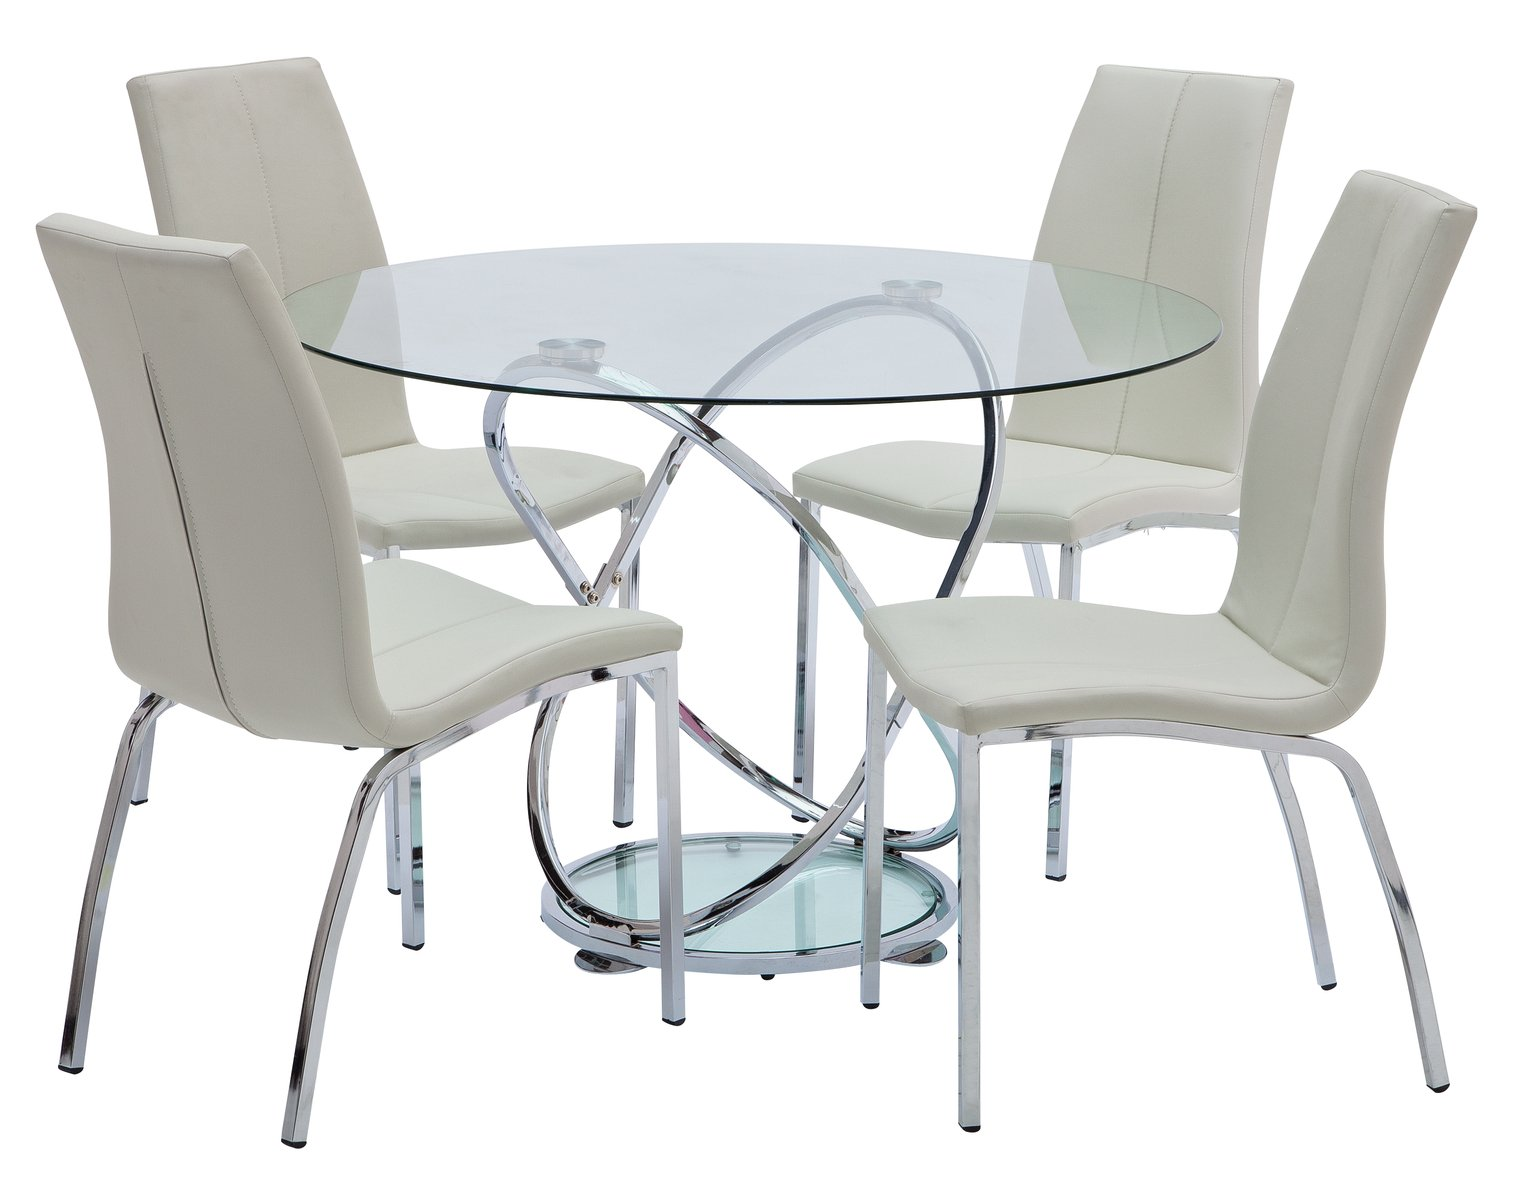 Collection Atom Round Glass Table & 4 Chairs - White from The Collection by Argos